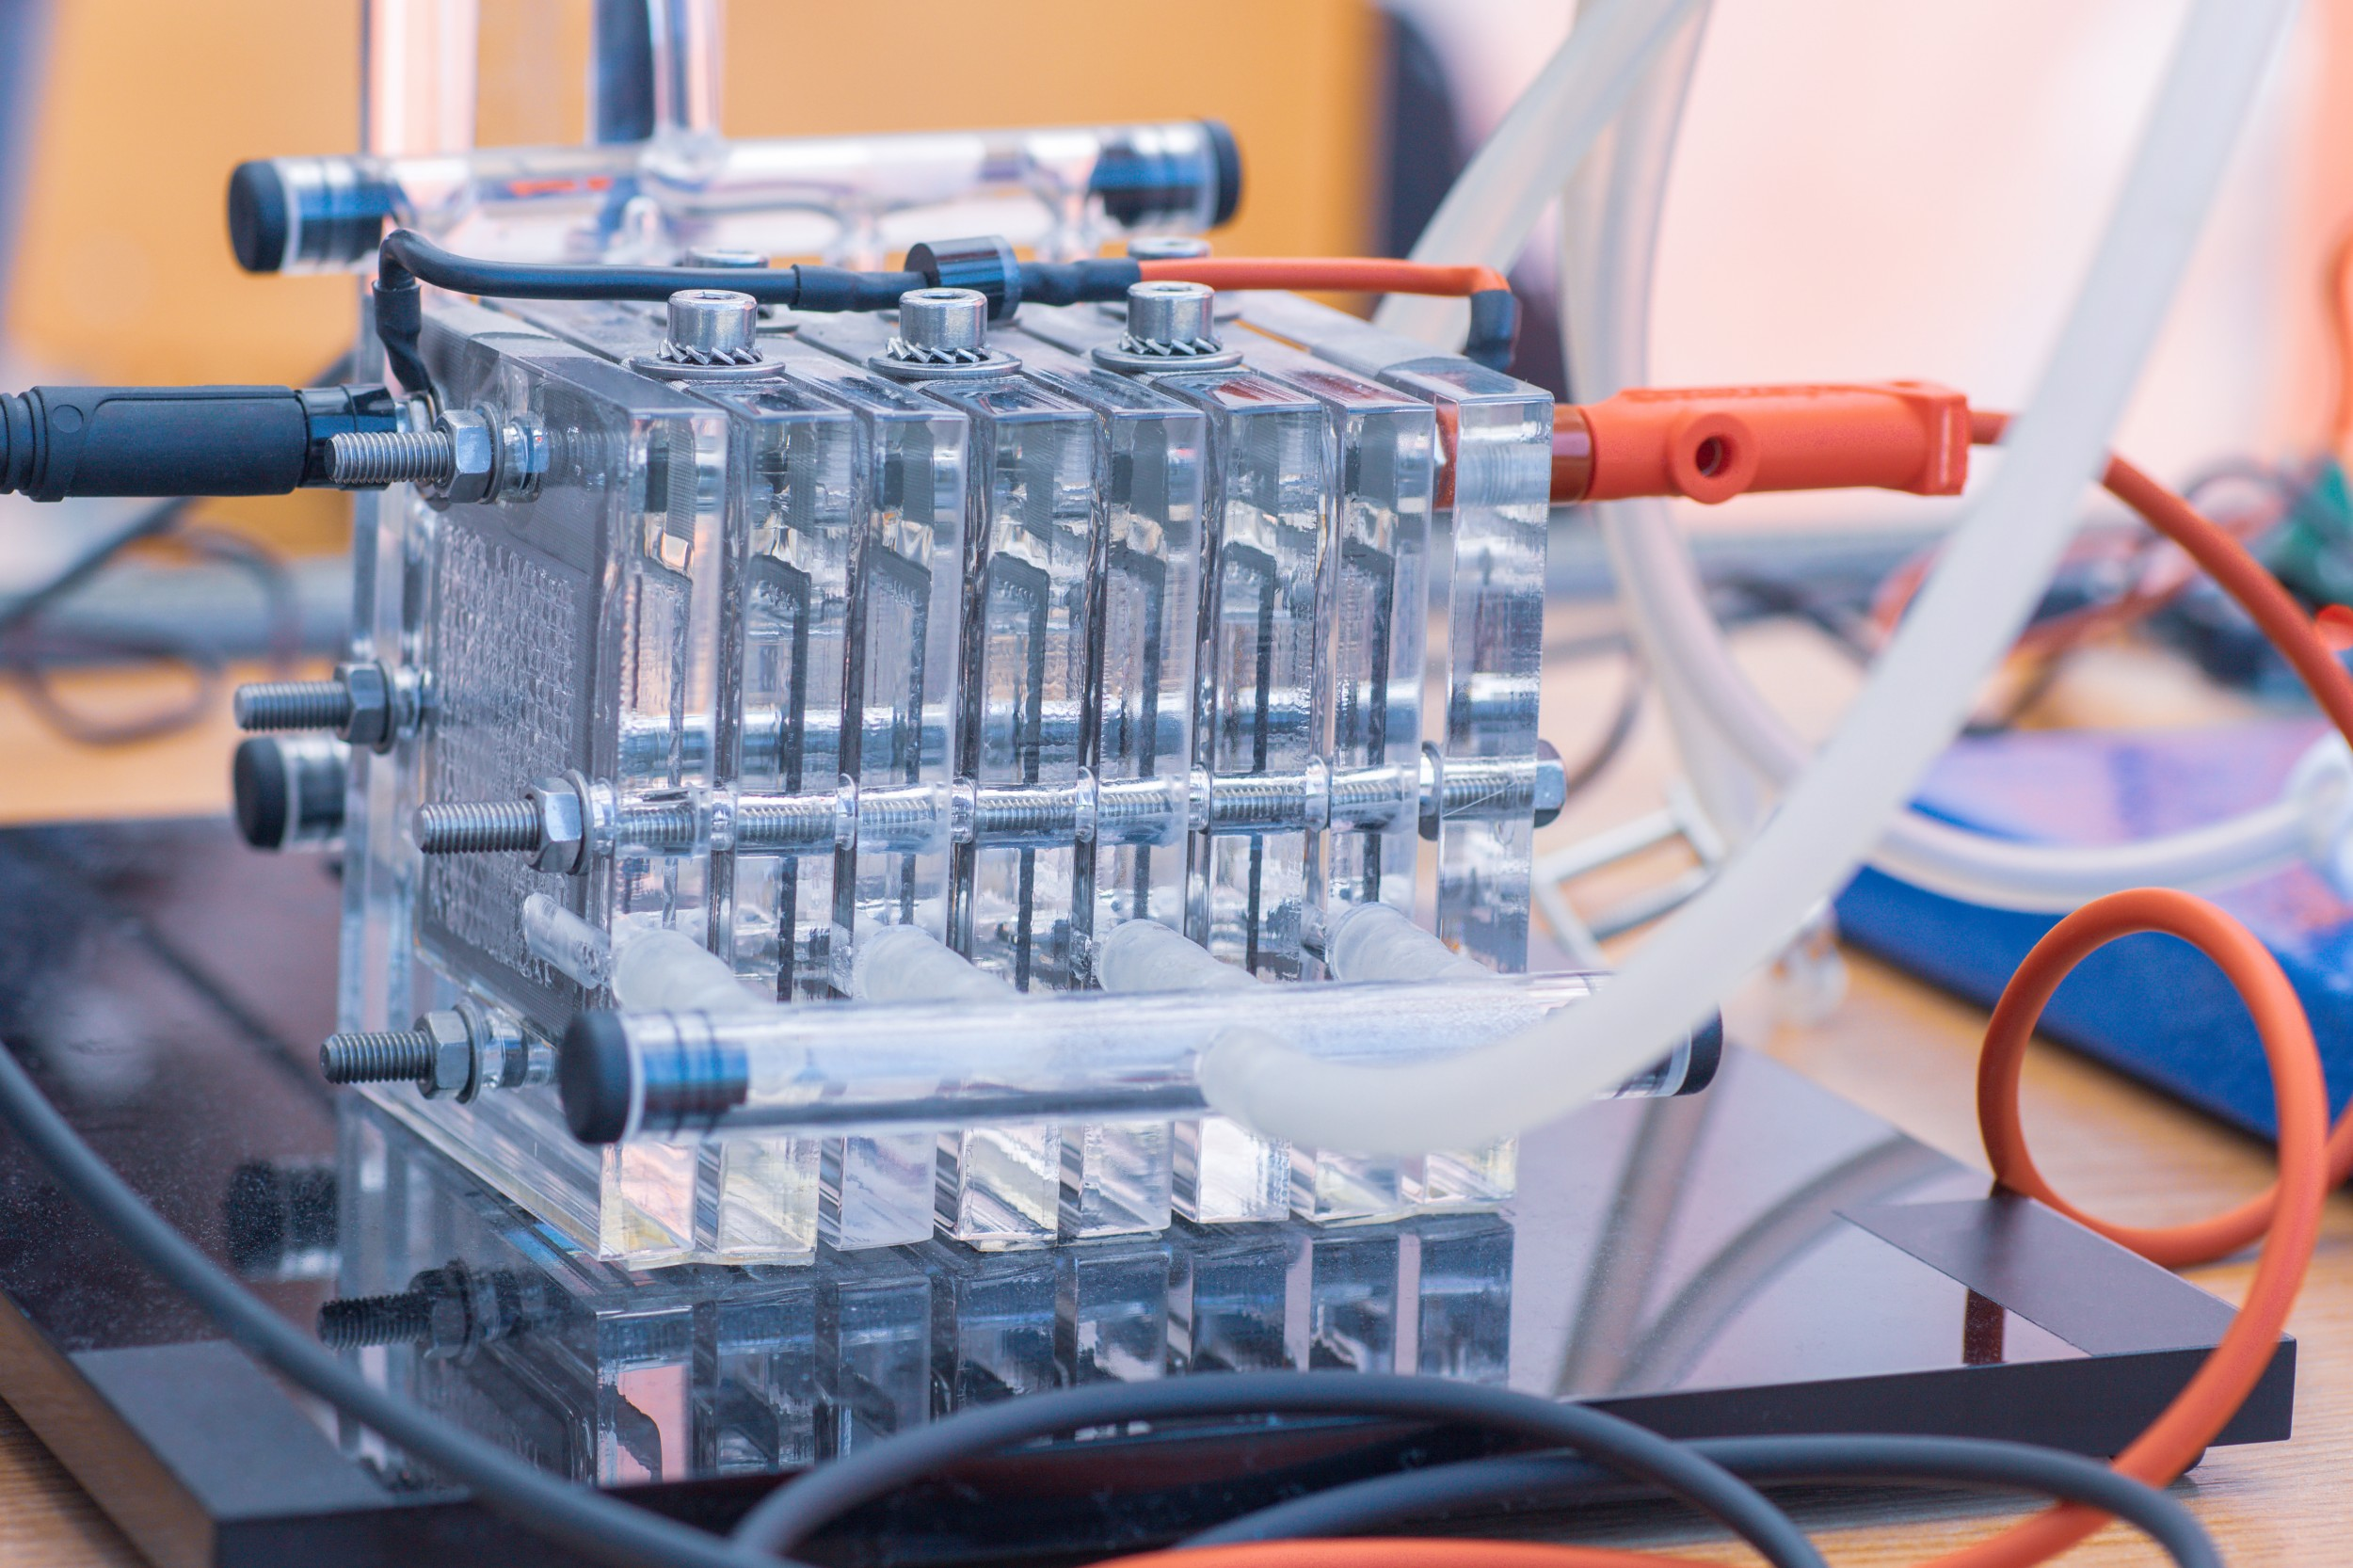 A fuel cell in the laboratory: Swiss companies aim to play an important part in the emerging market of fuel cells and hydrogen technology.